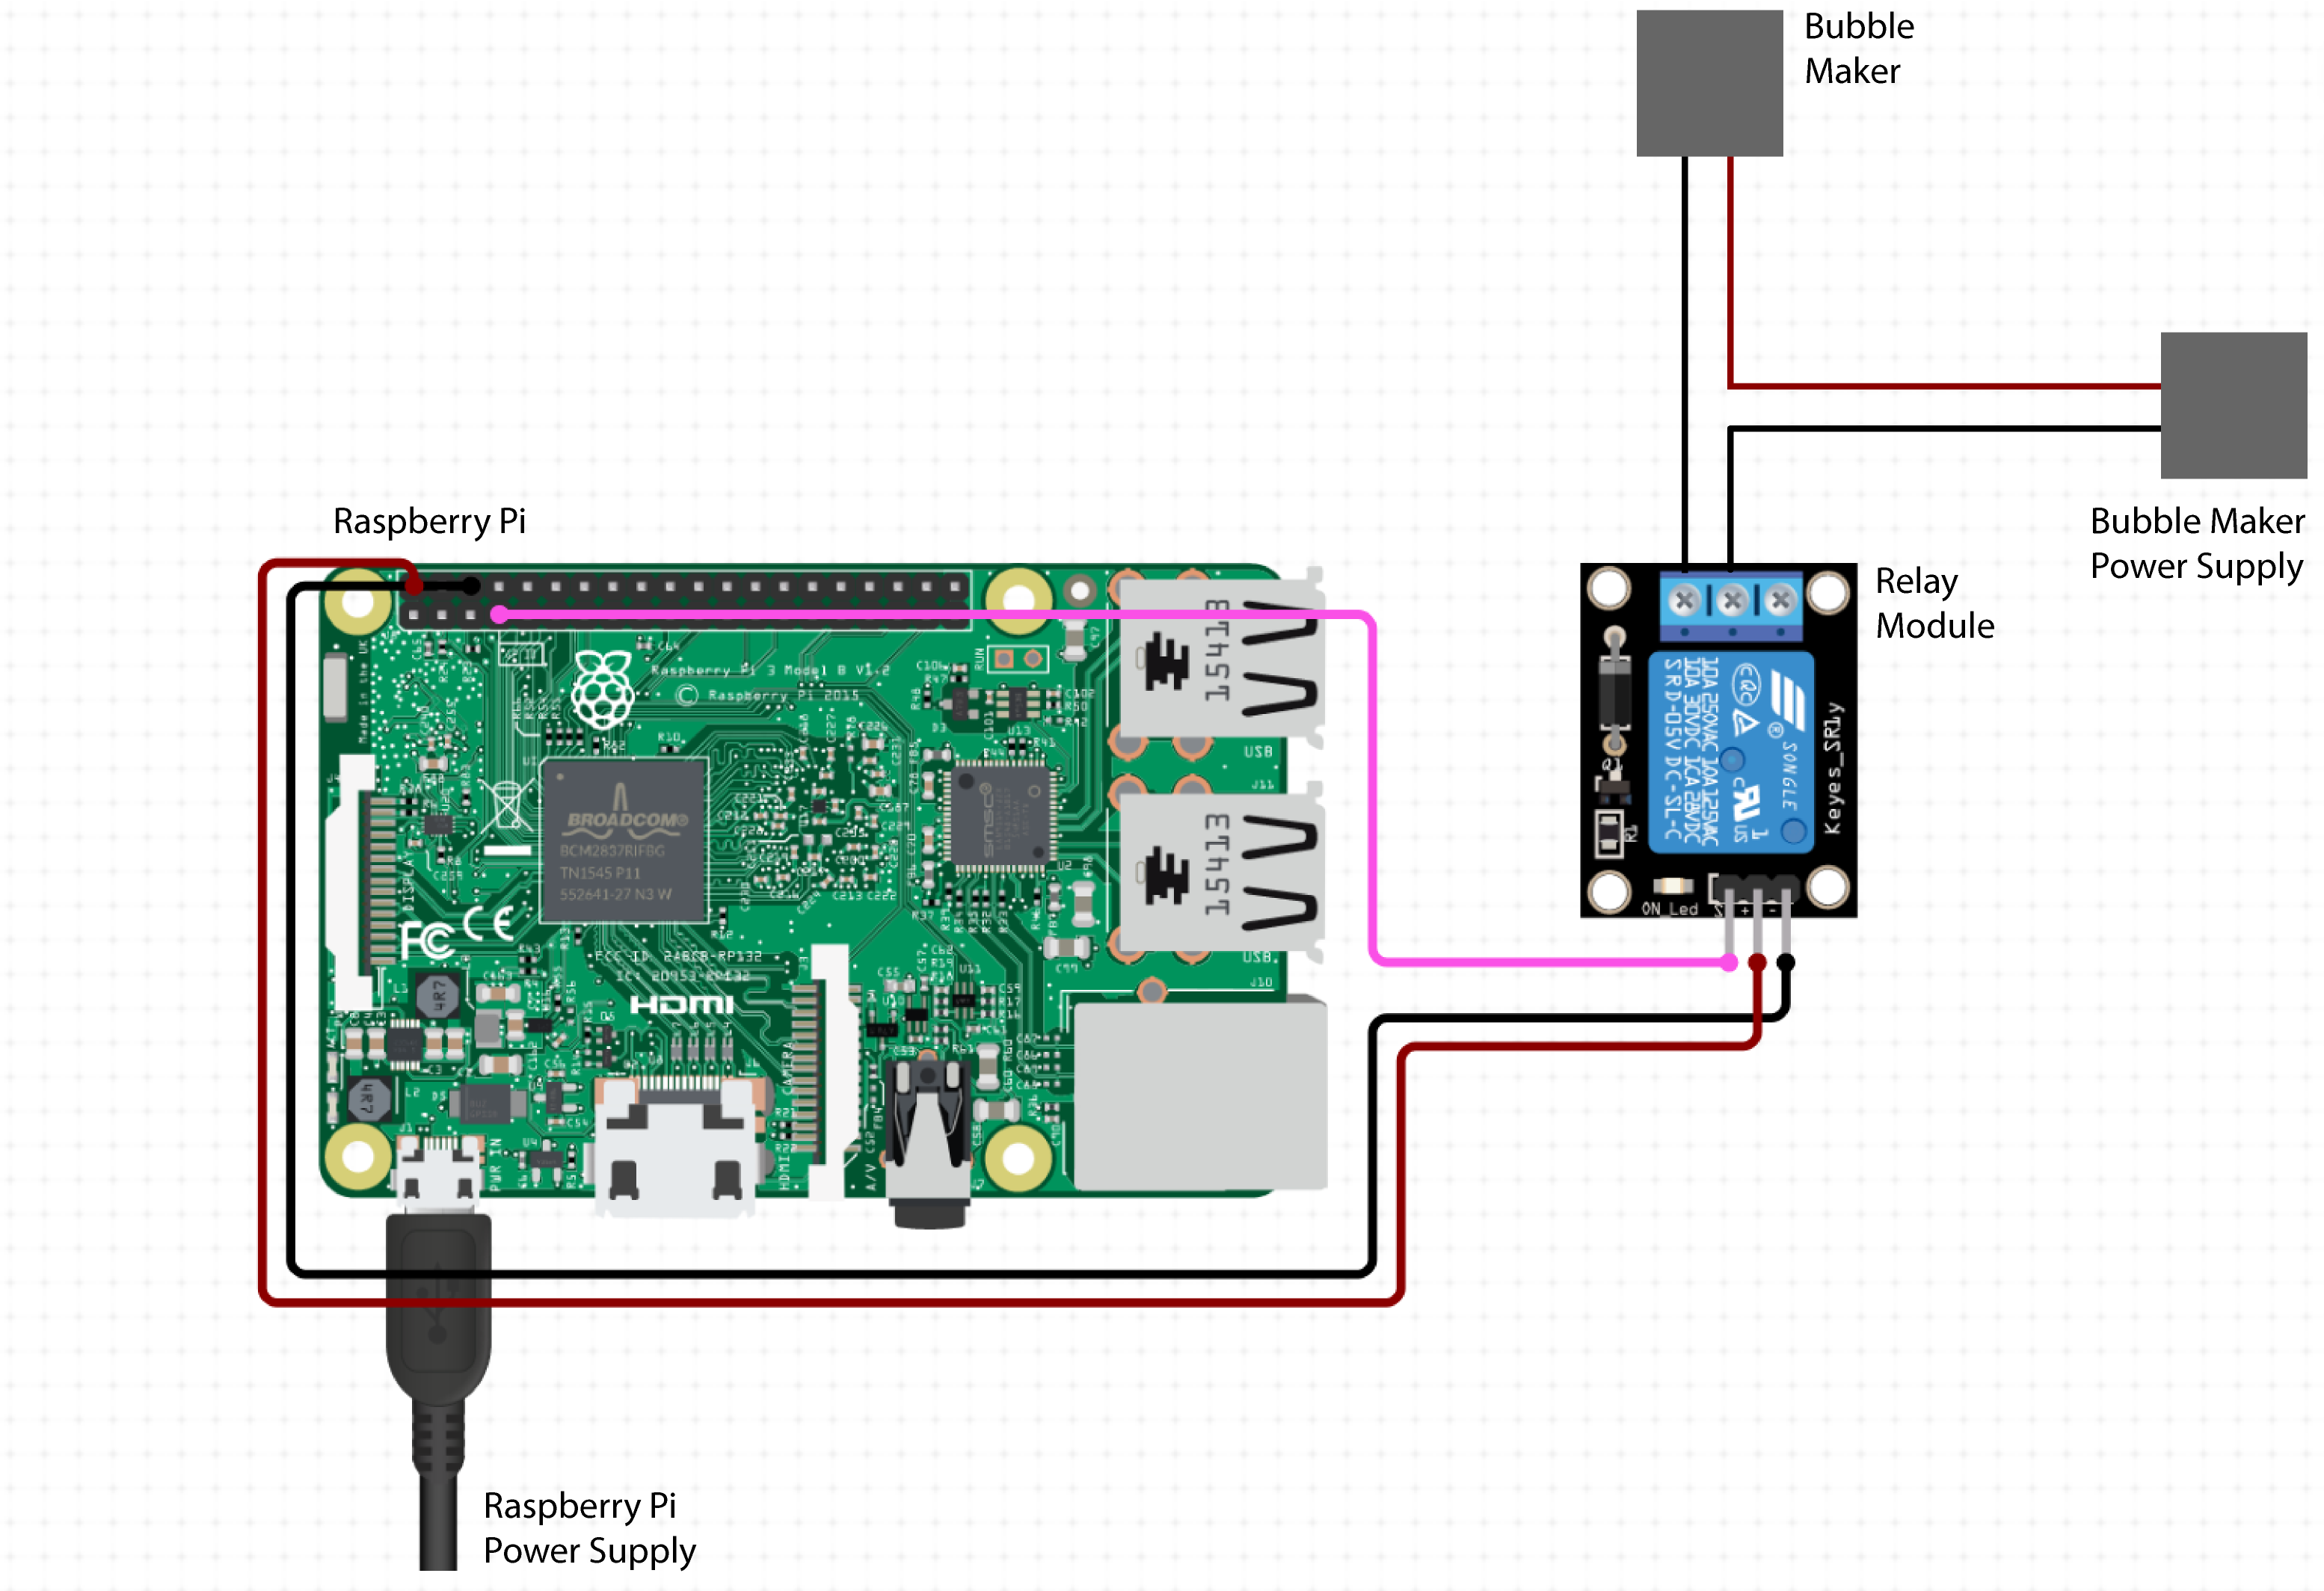 Diagram of system, relay plugged into pi and bubble maker power supply